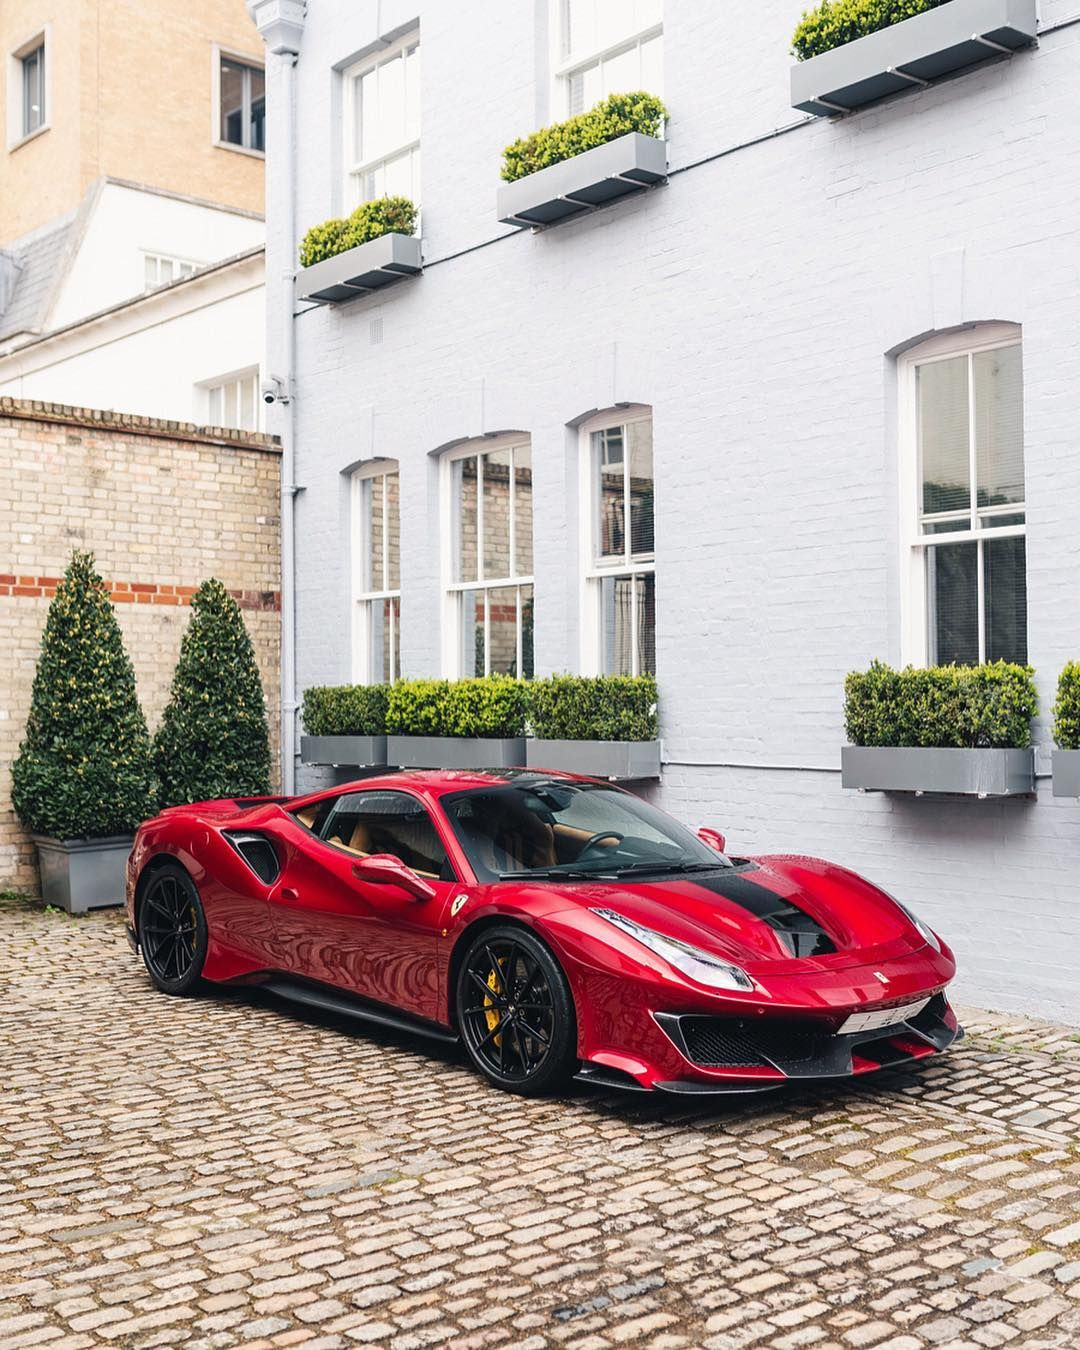 "Freddie Atkins on Instagram: ""Incredible spec on this freshly delivered Pista ?? #Ferrari #488Pista #London"""